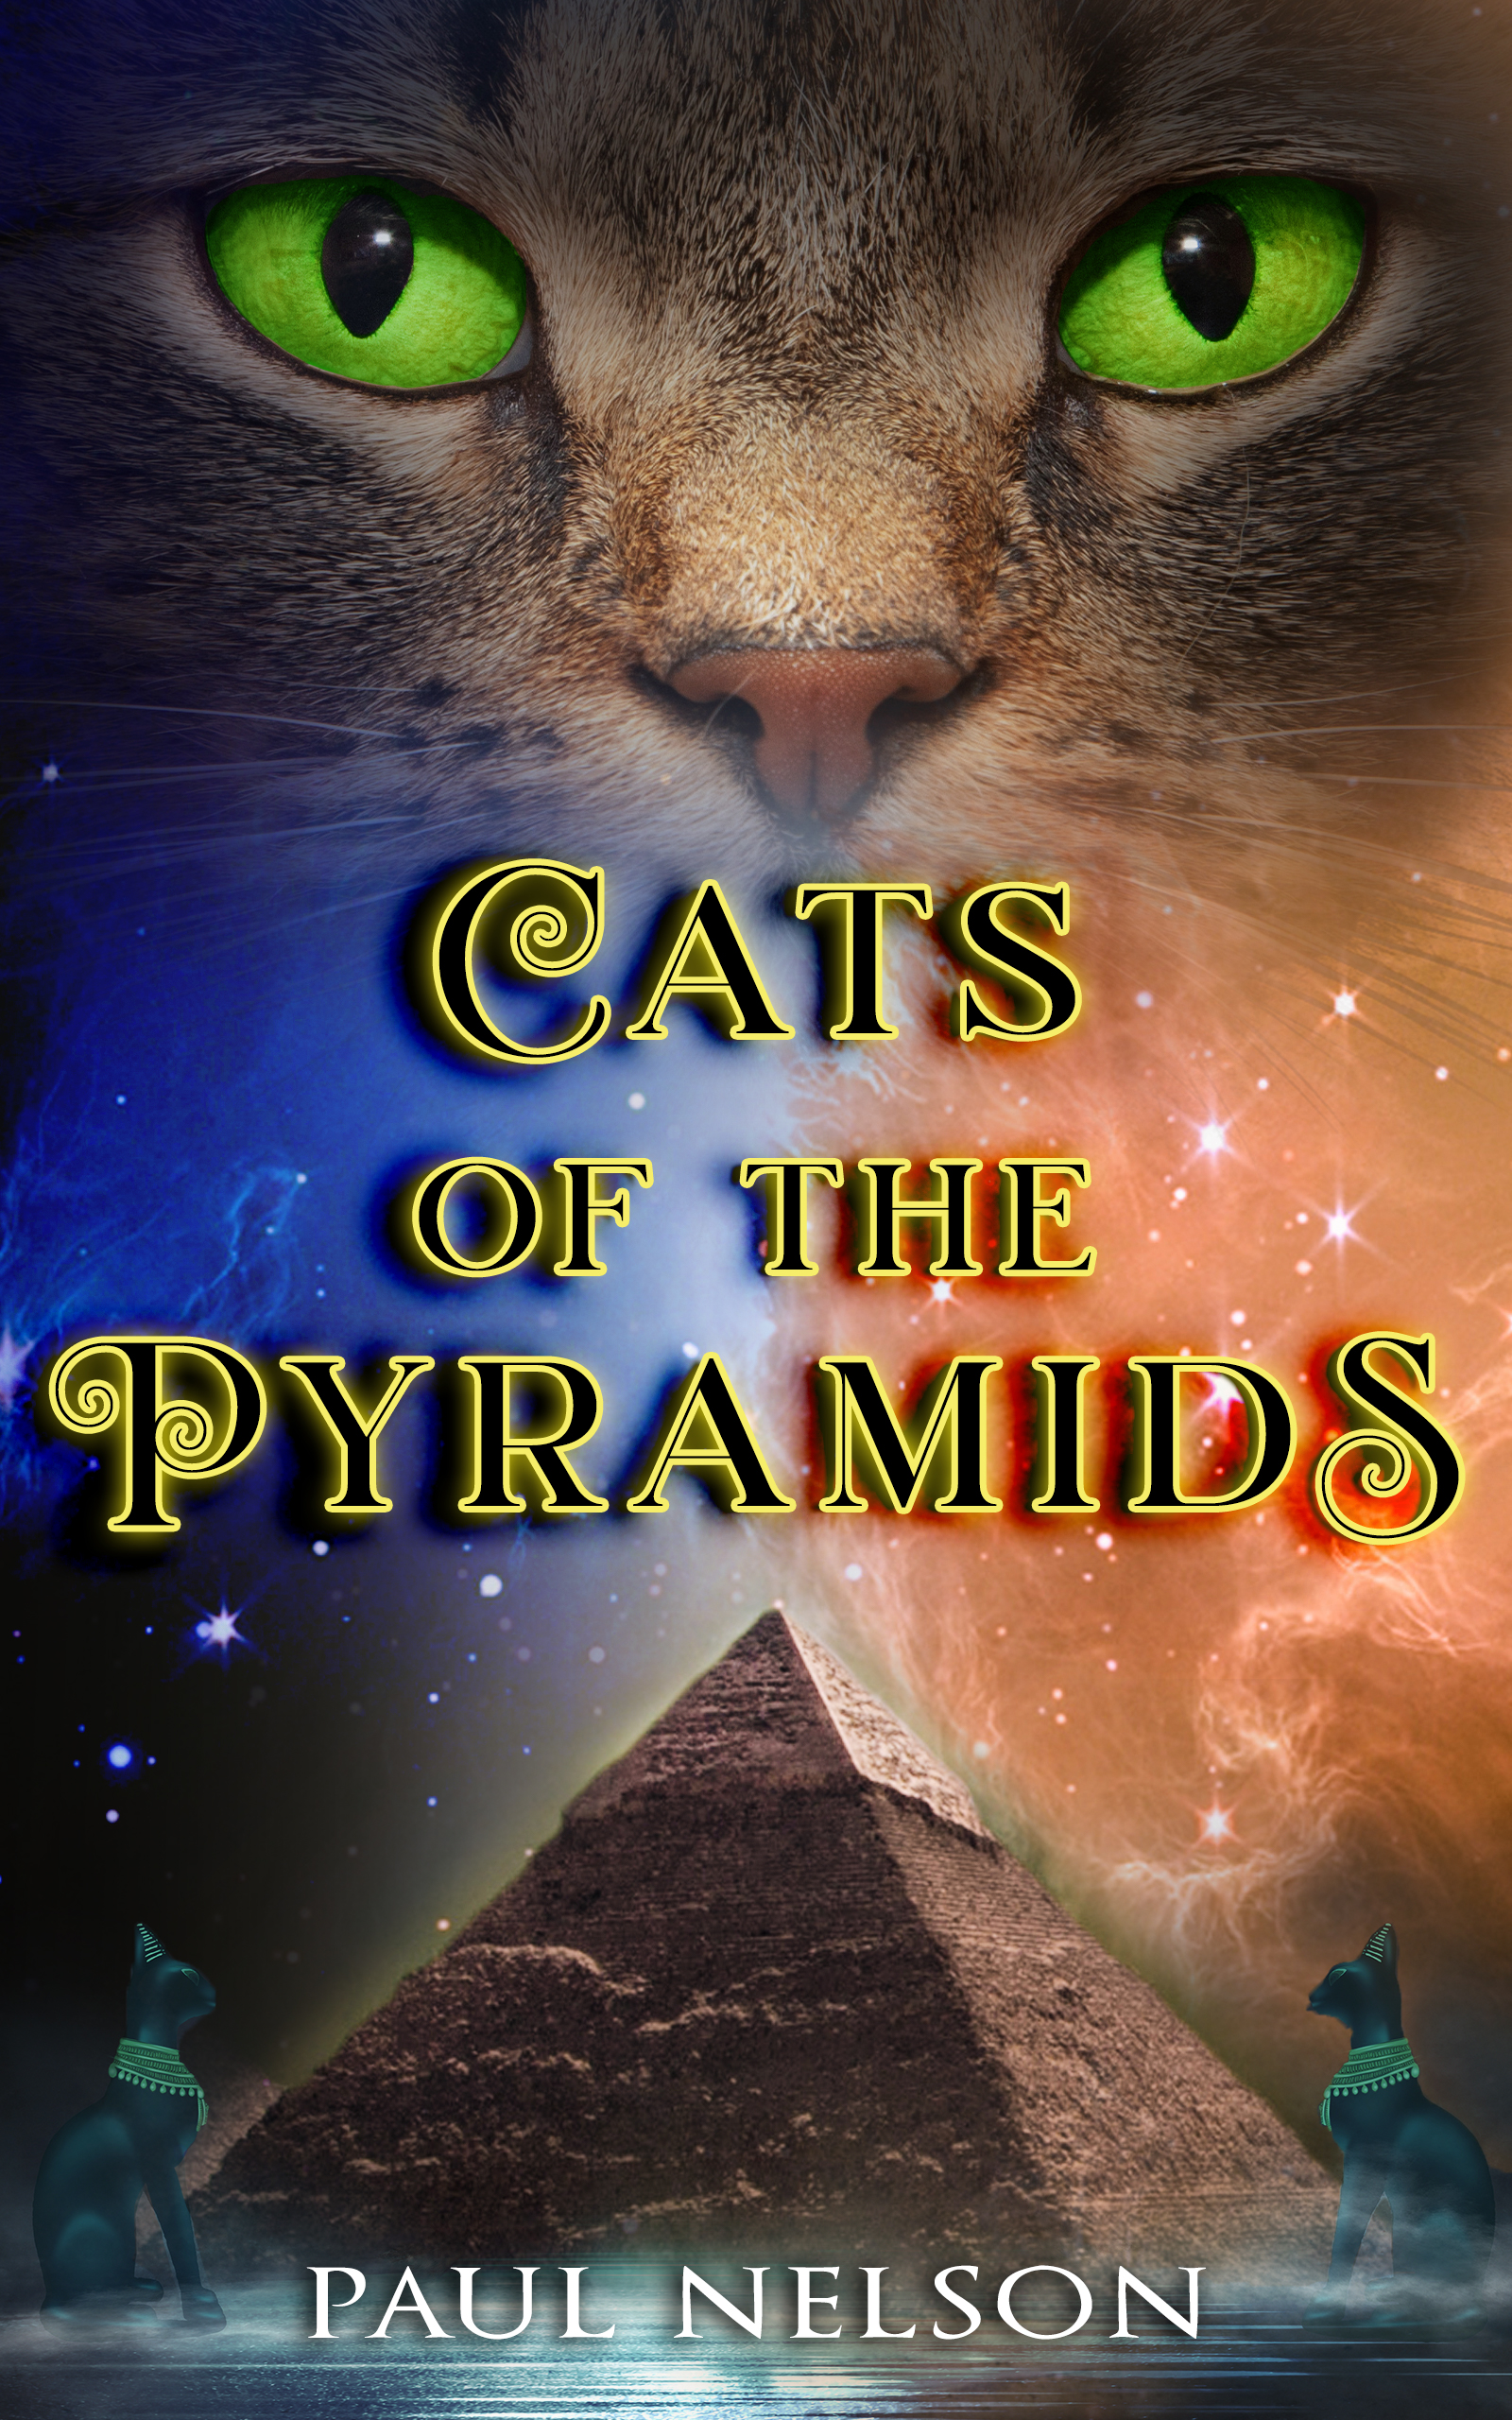 Cats of the Pyramids by Paul Nelson